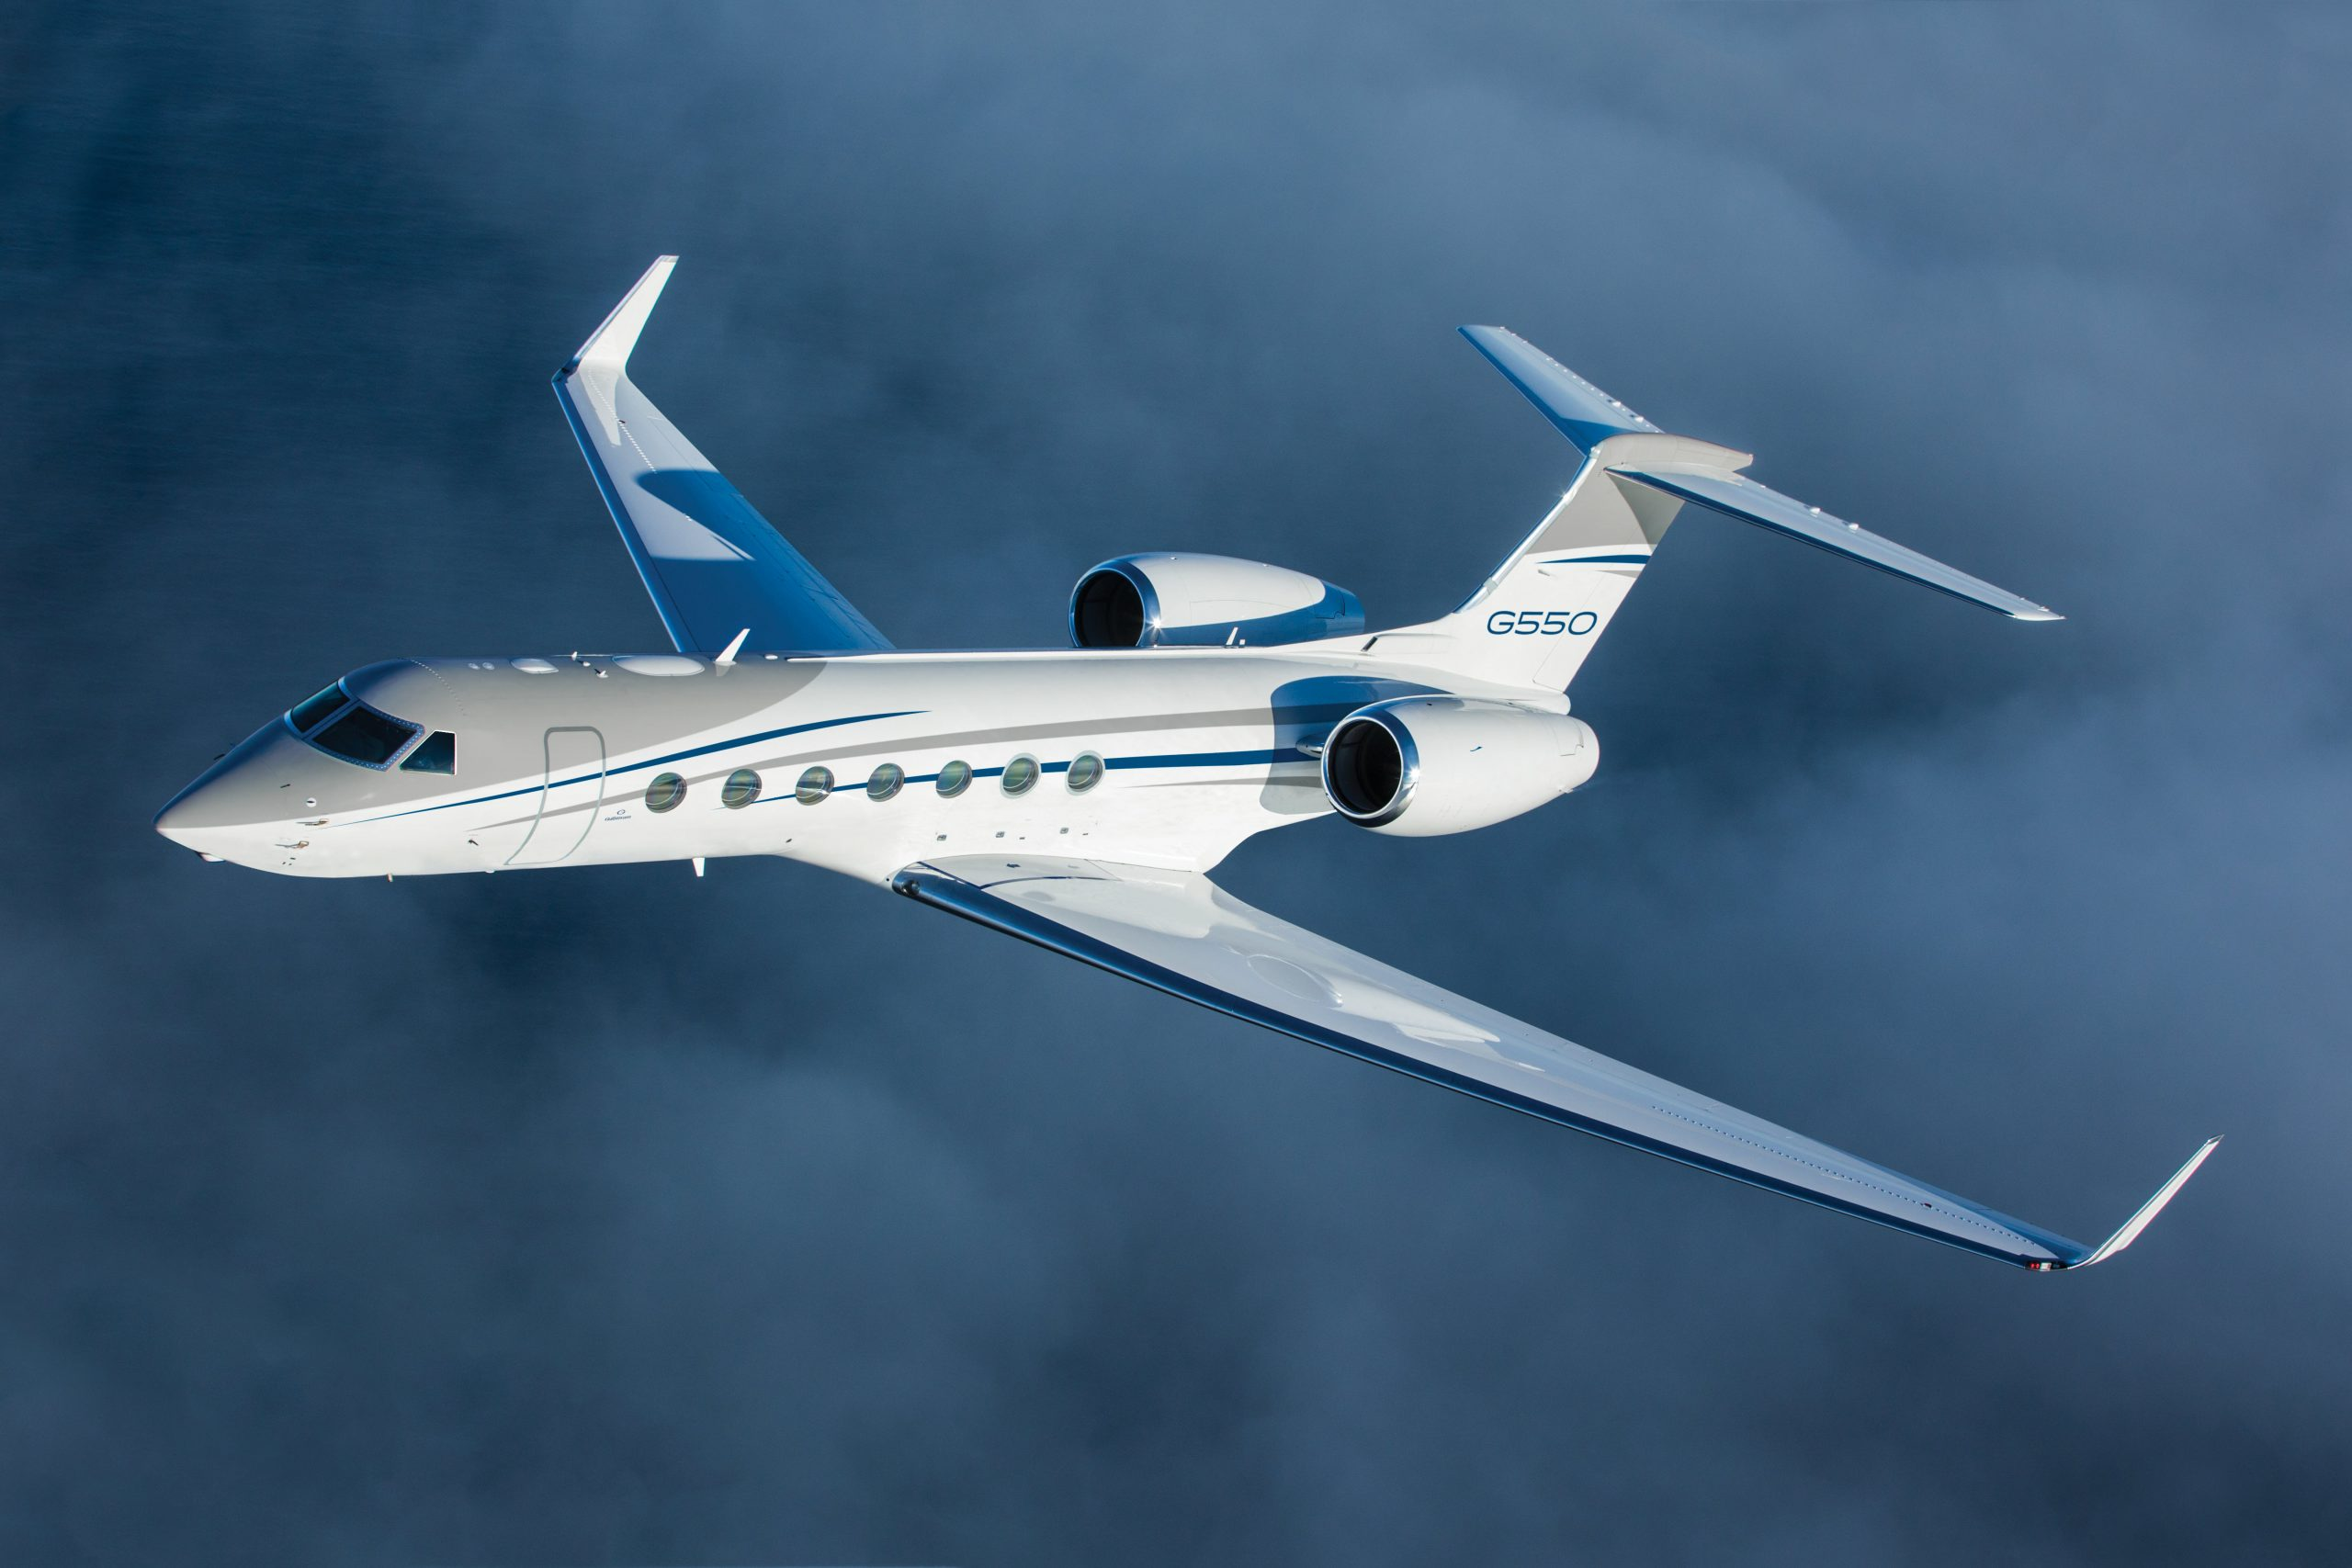 Gulfstream Corp. To Terminate G550 Program